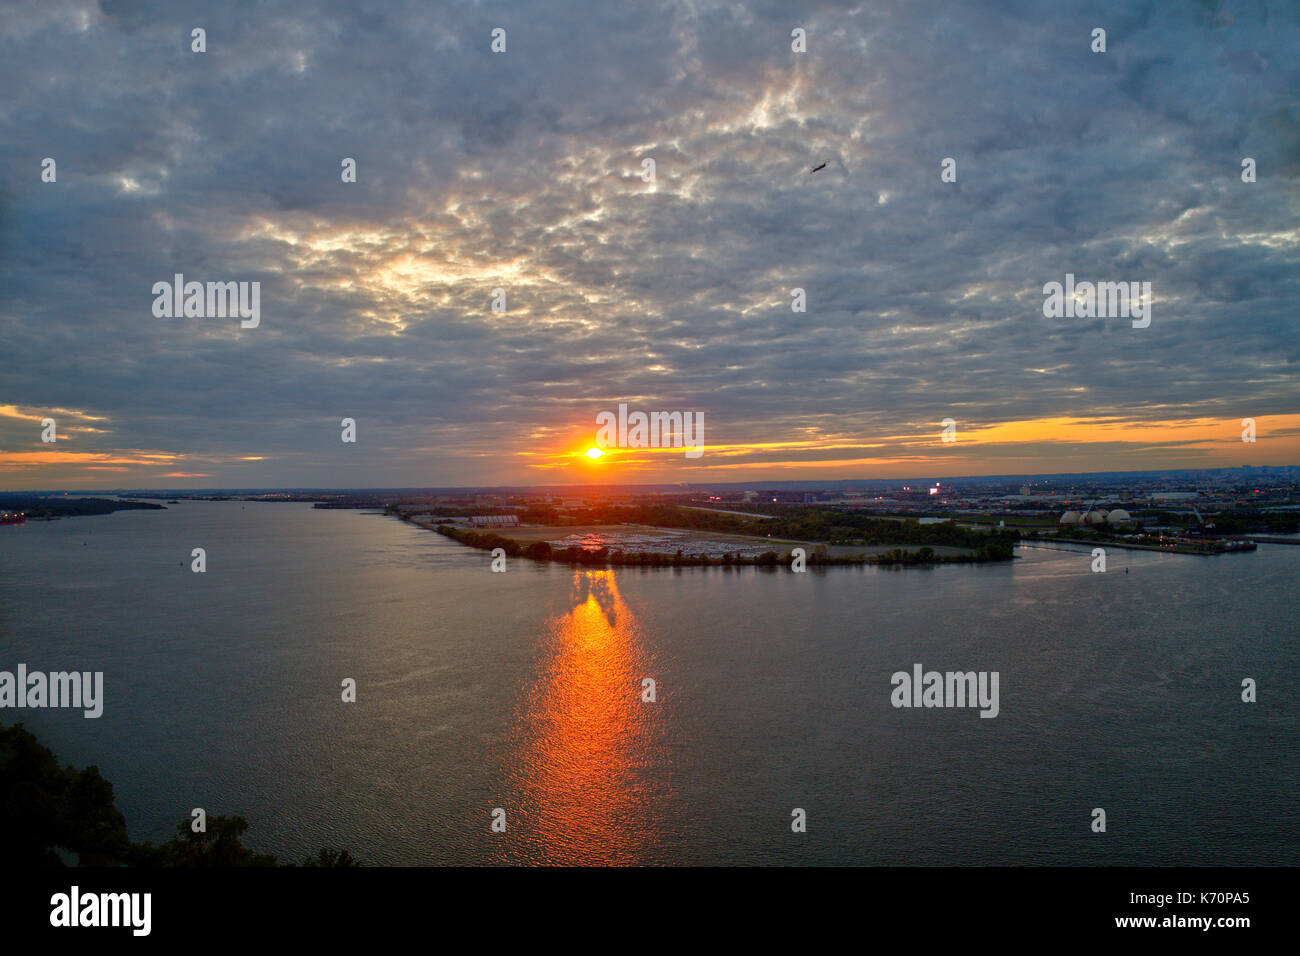 Aerial View of Sunset over Water - Stock Image